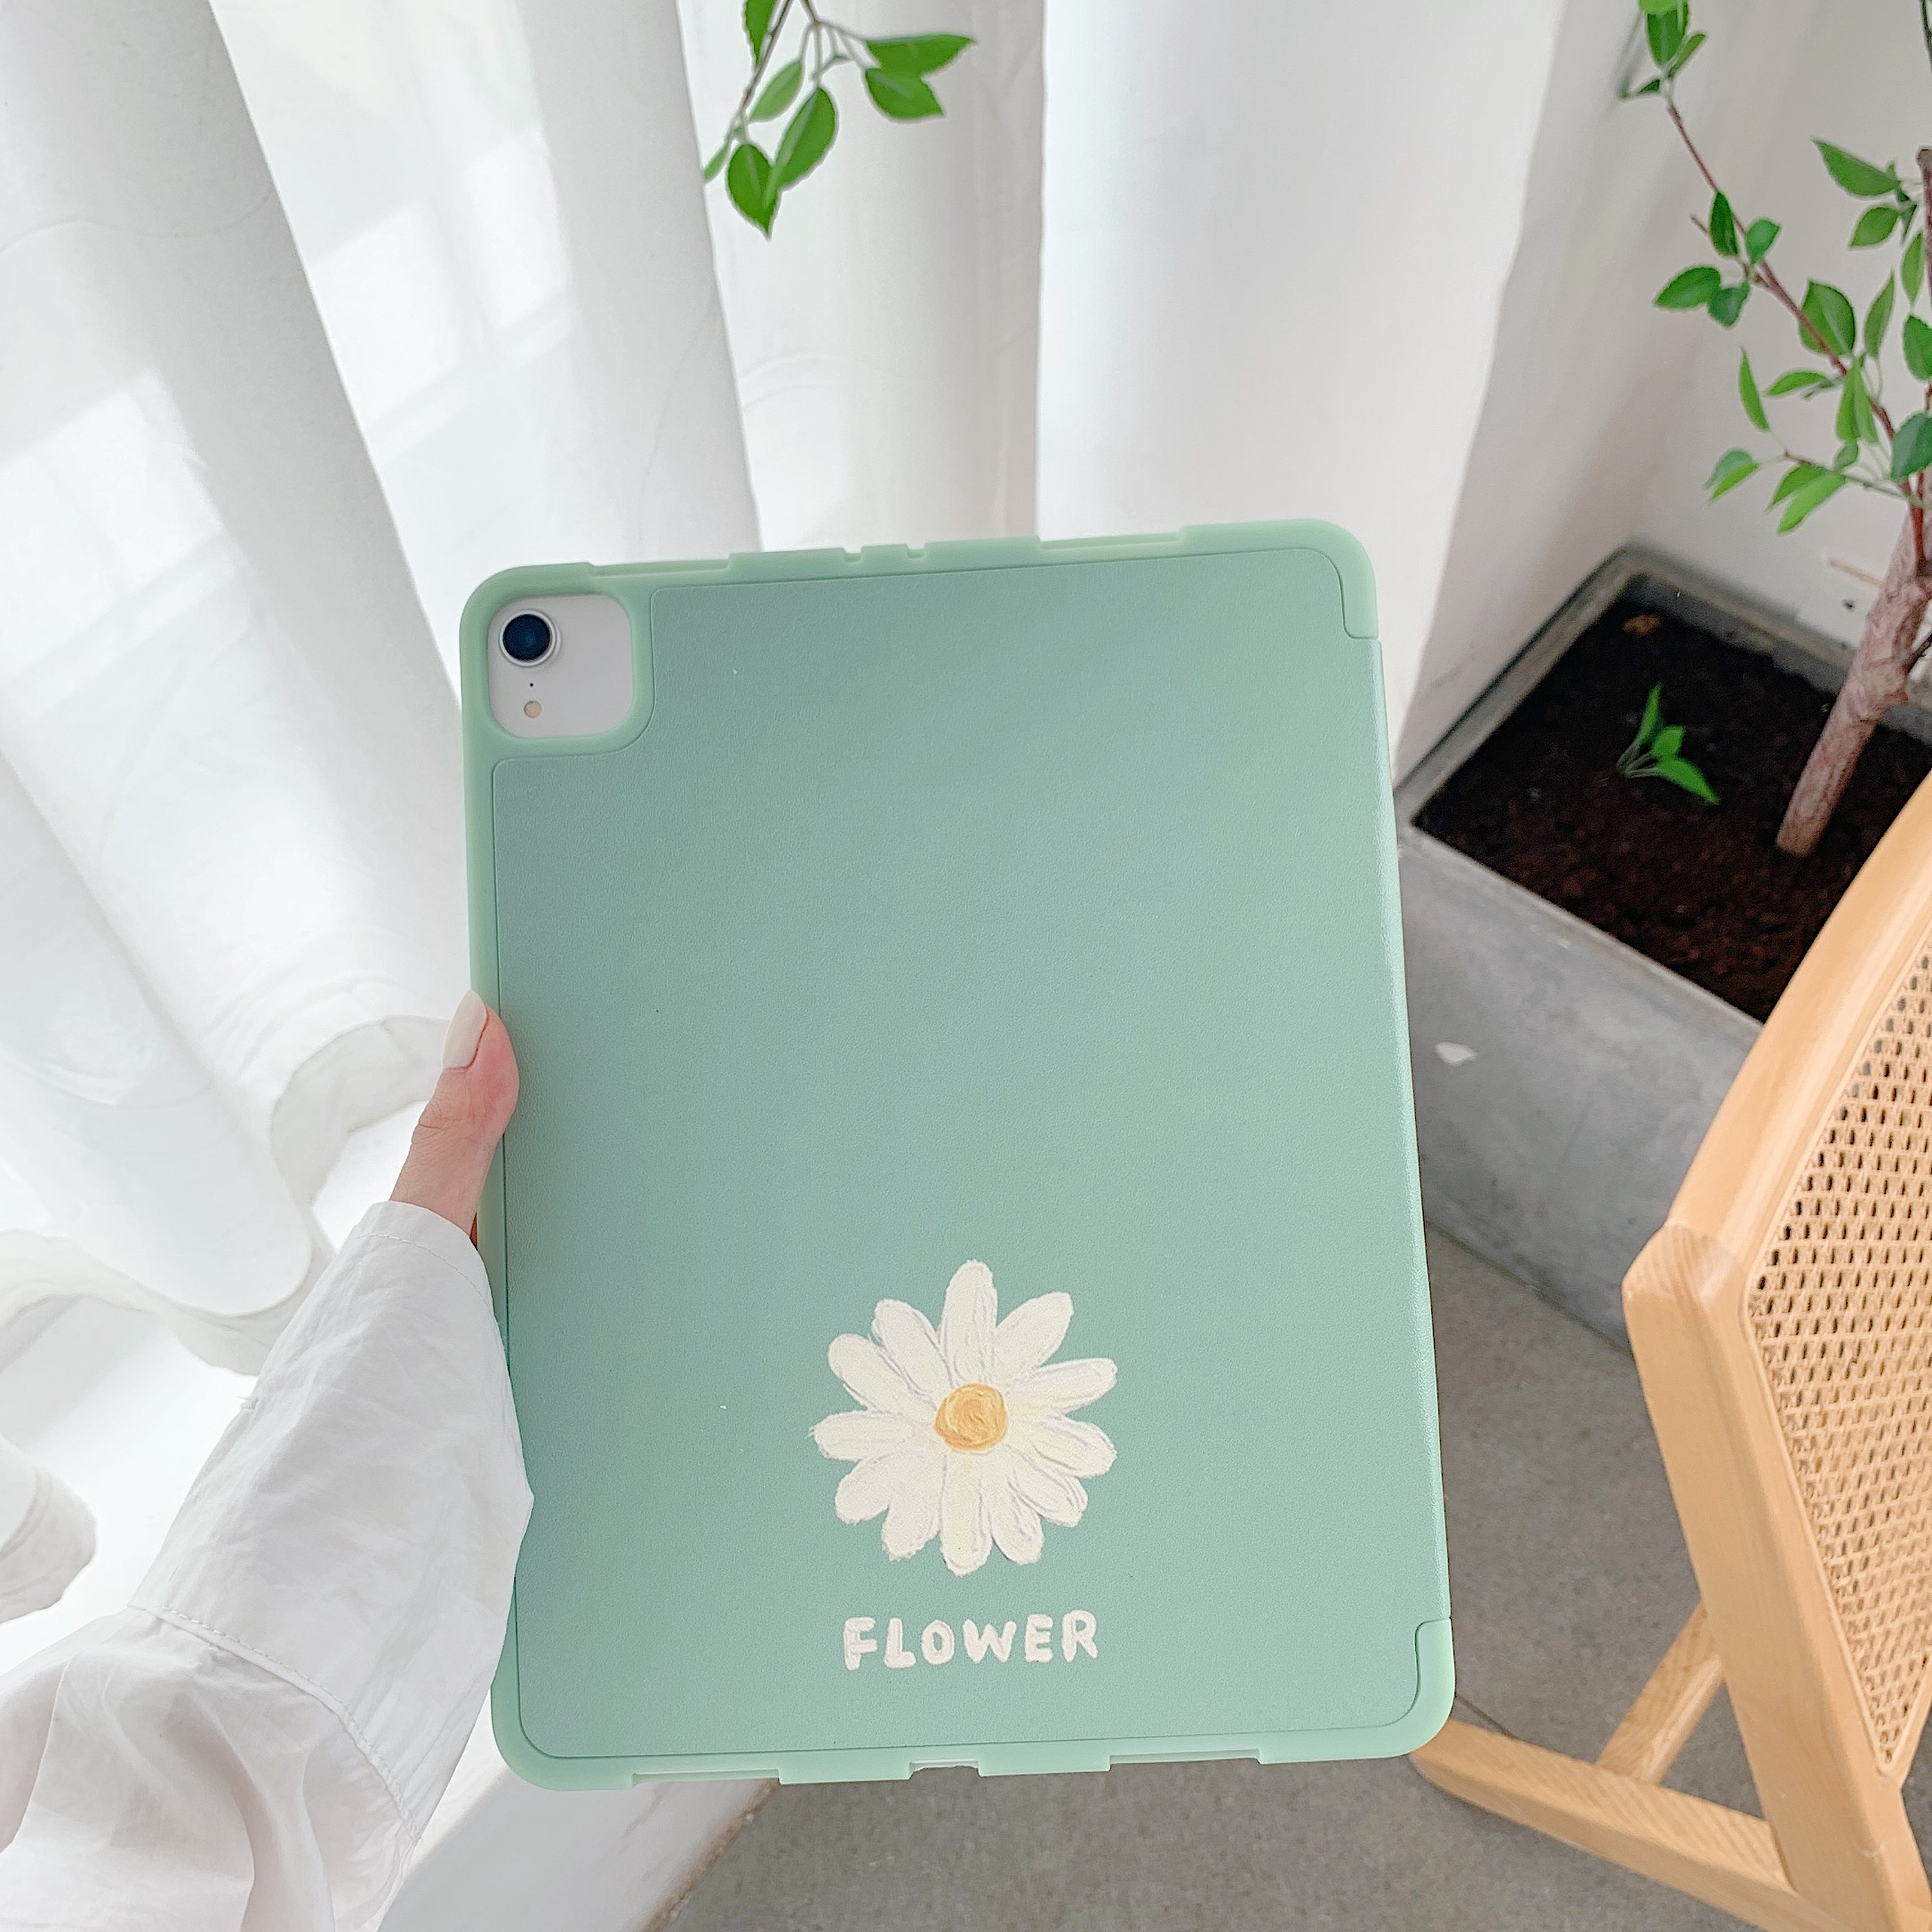 Daisy Flower  Case For Ipad Pro 2020 Air 3 Back Cover 2